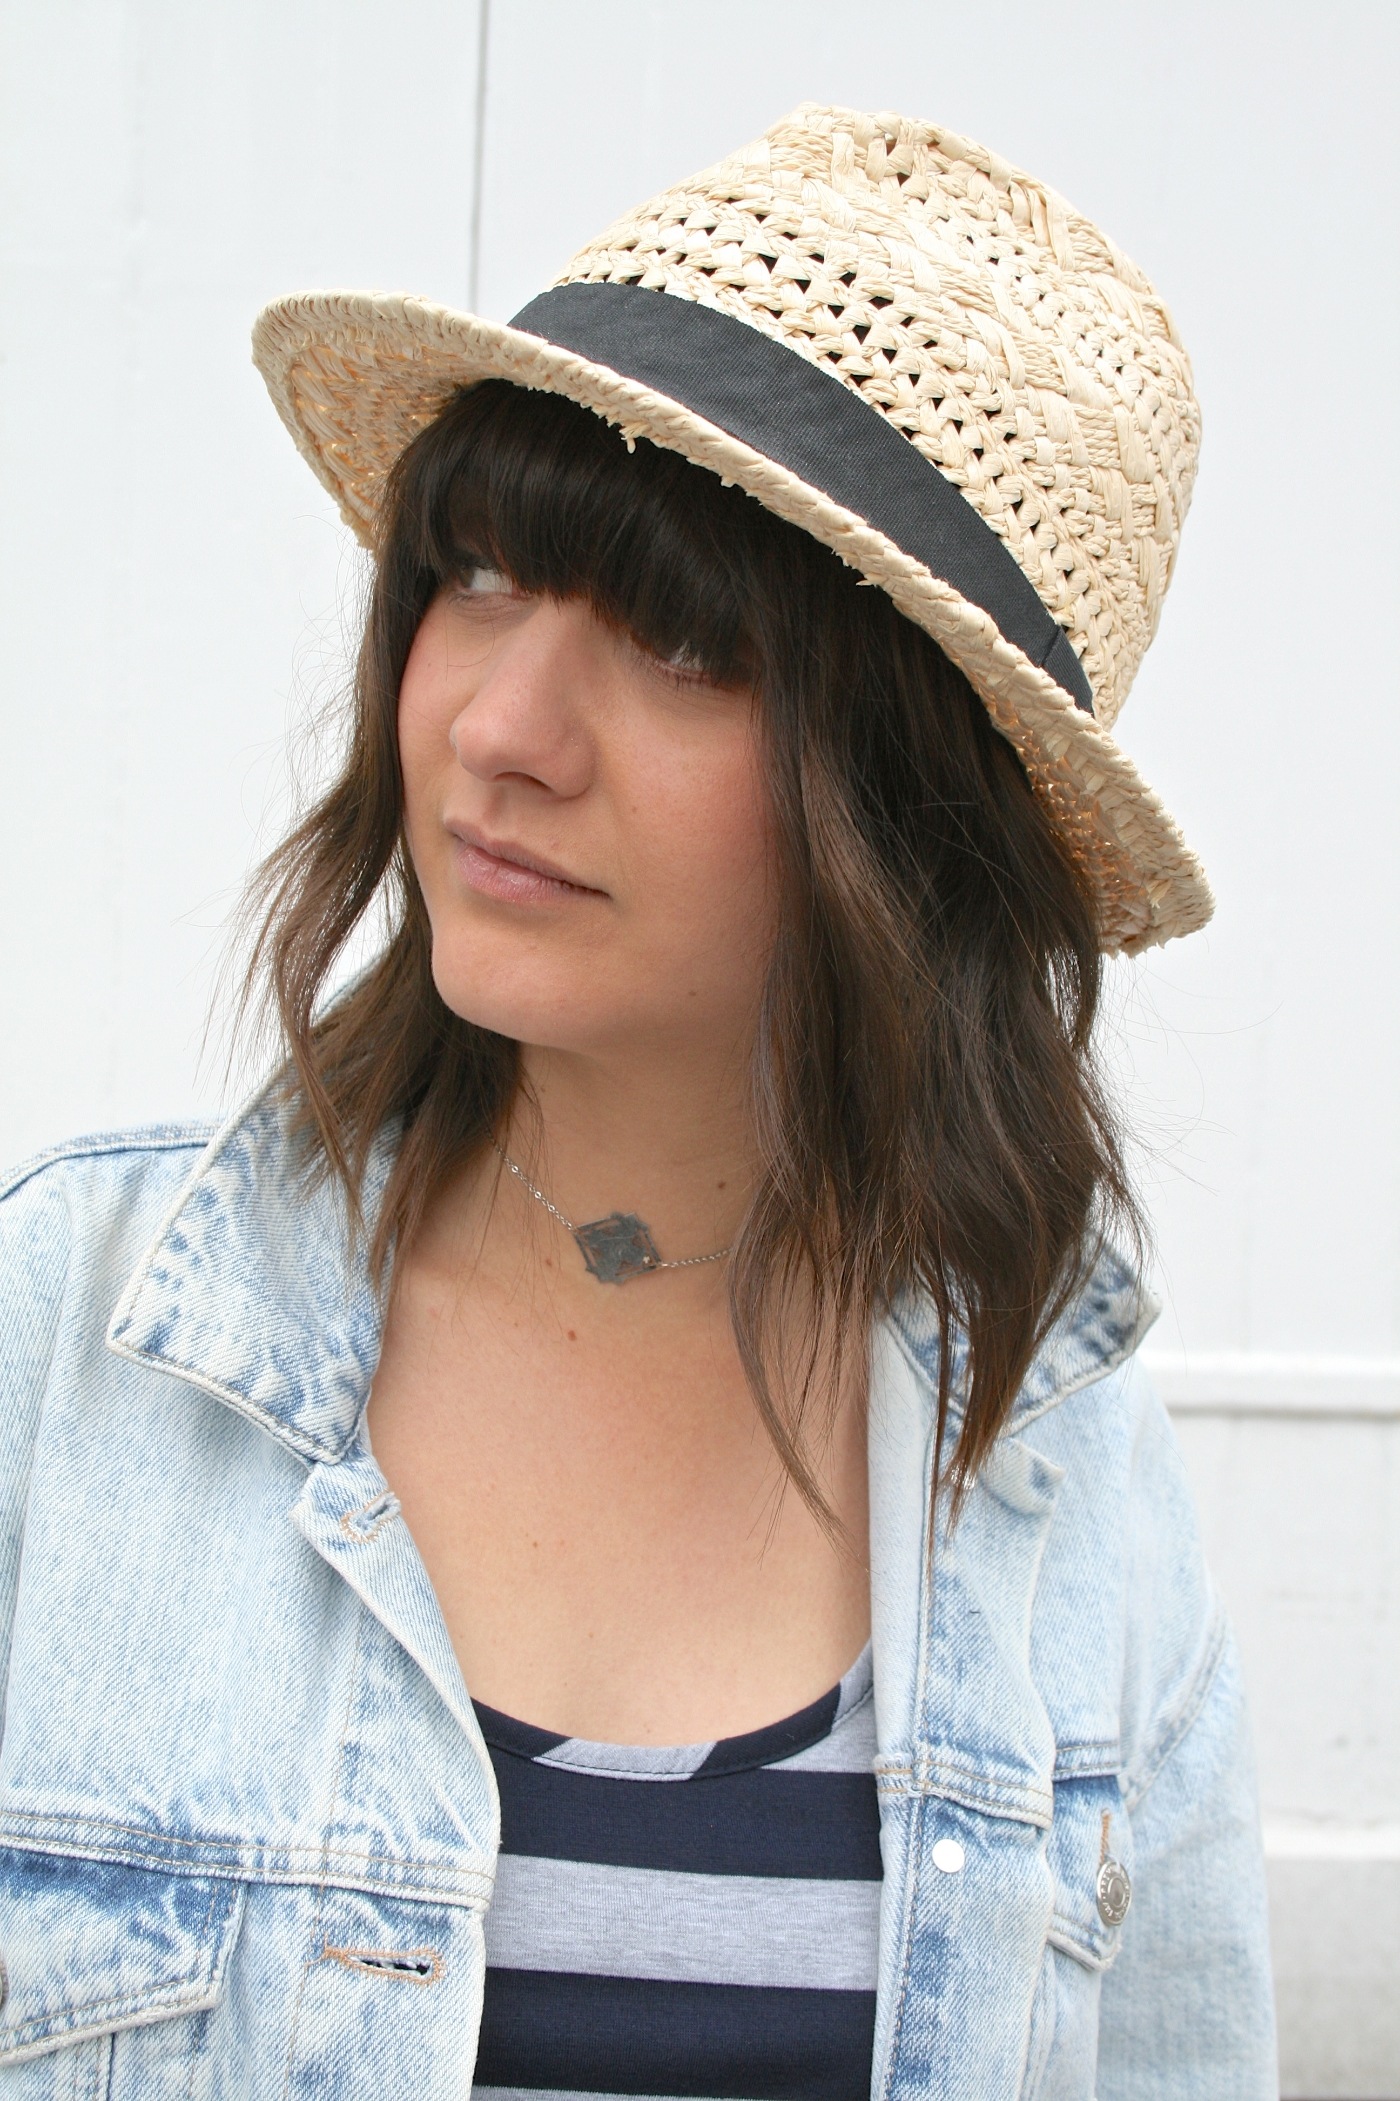 straw hat and chocker necklace